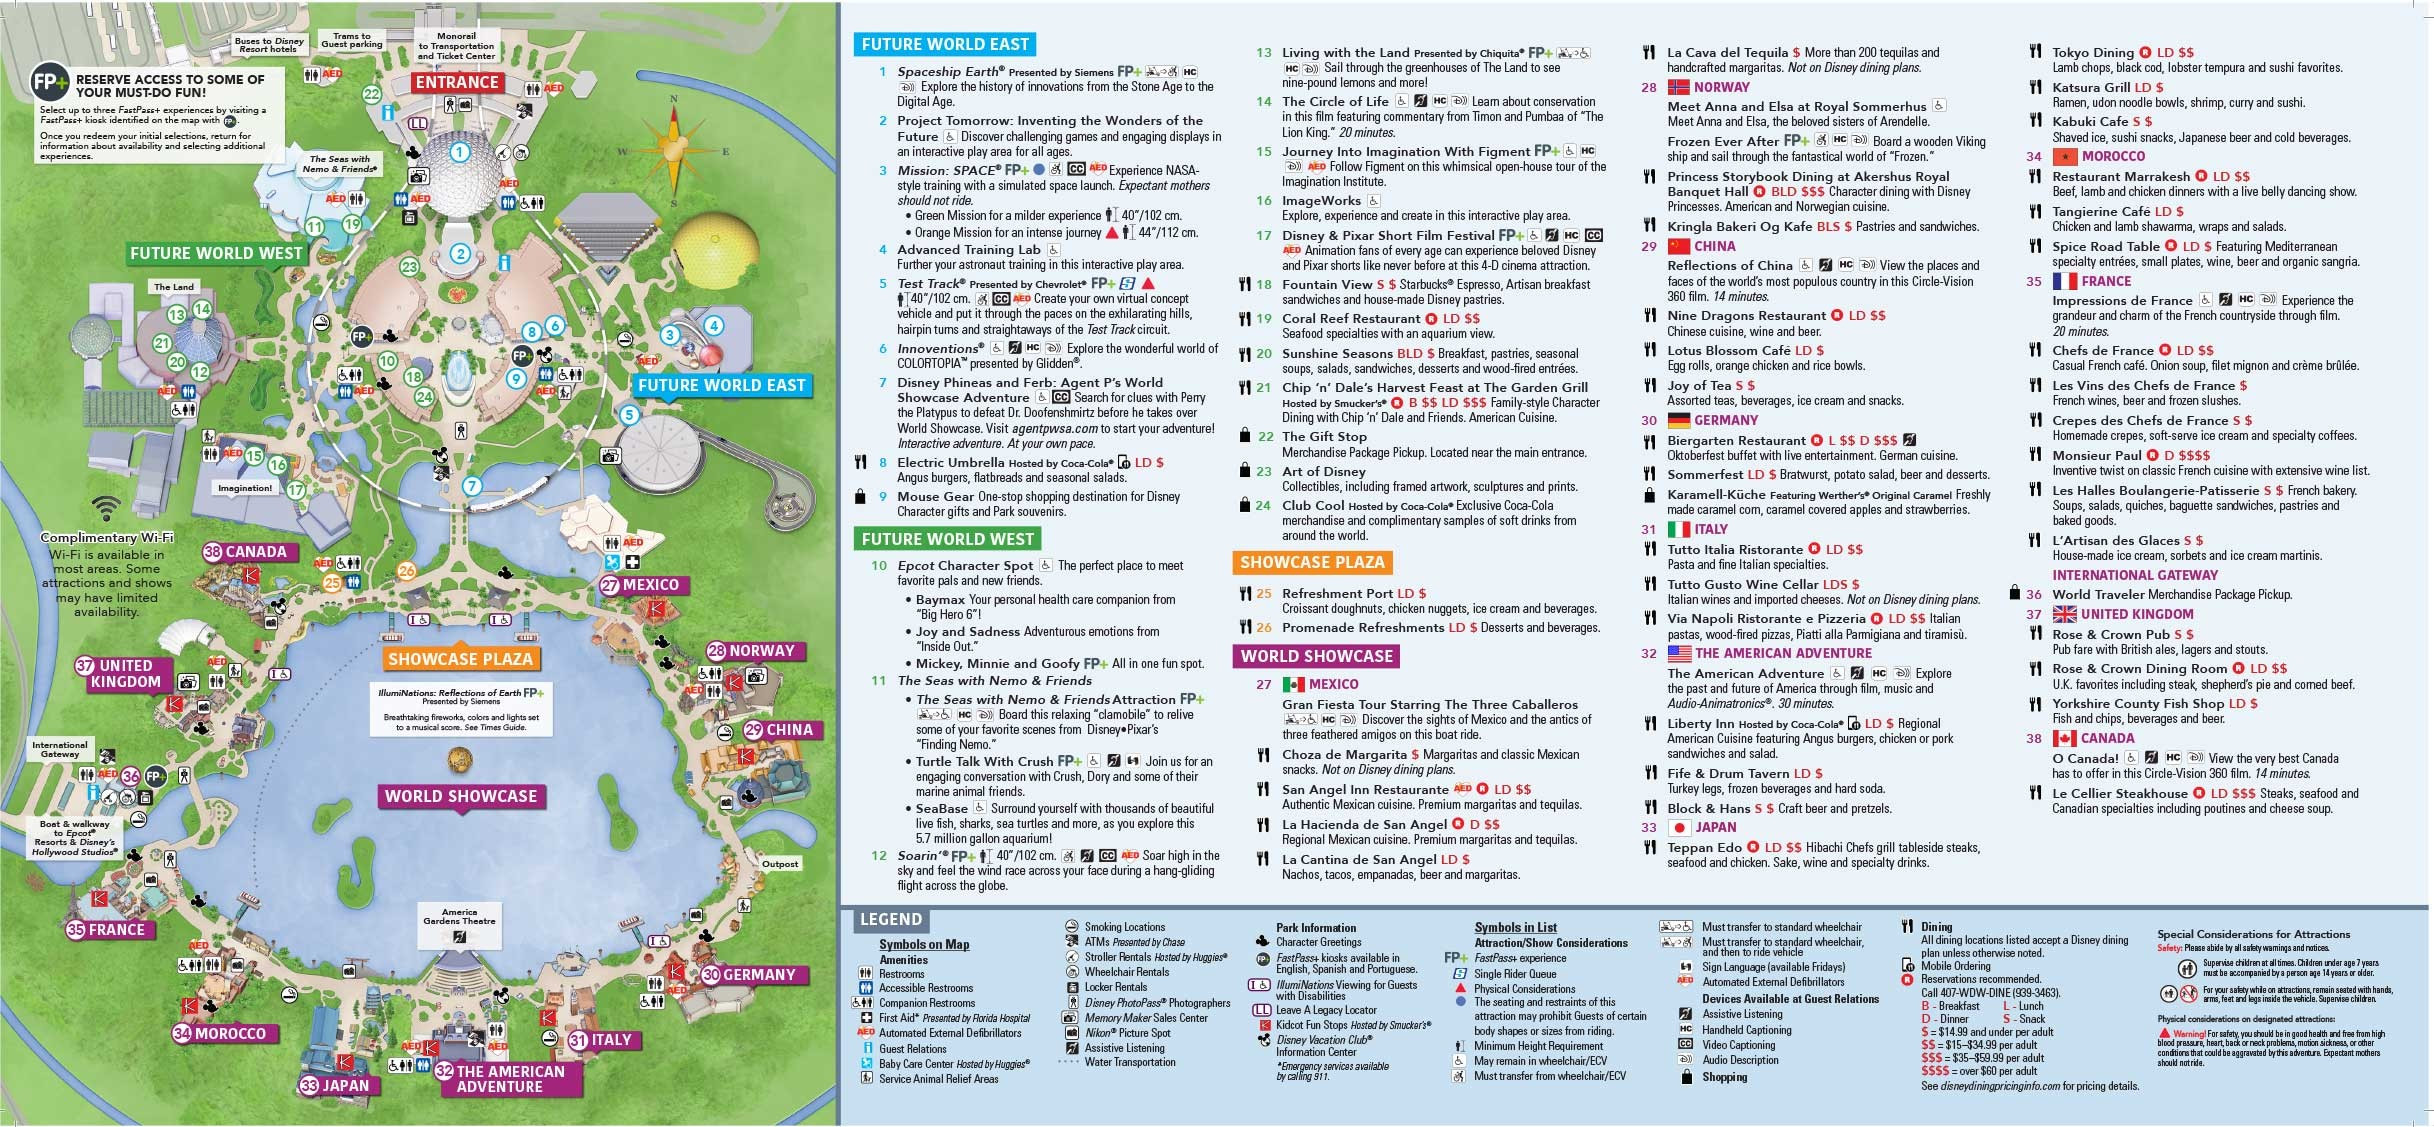 Printable Epcot Map 2017 Best Of Epcot Map World Showcase Awesomebryner